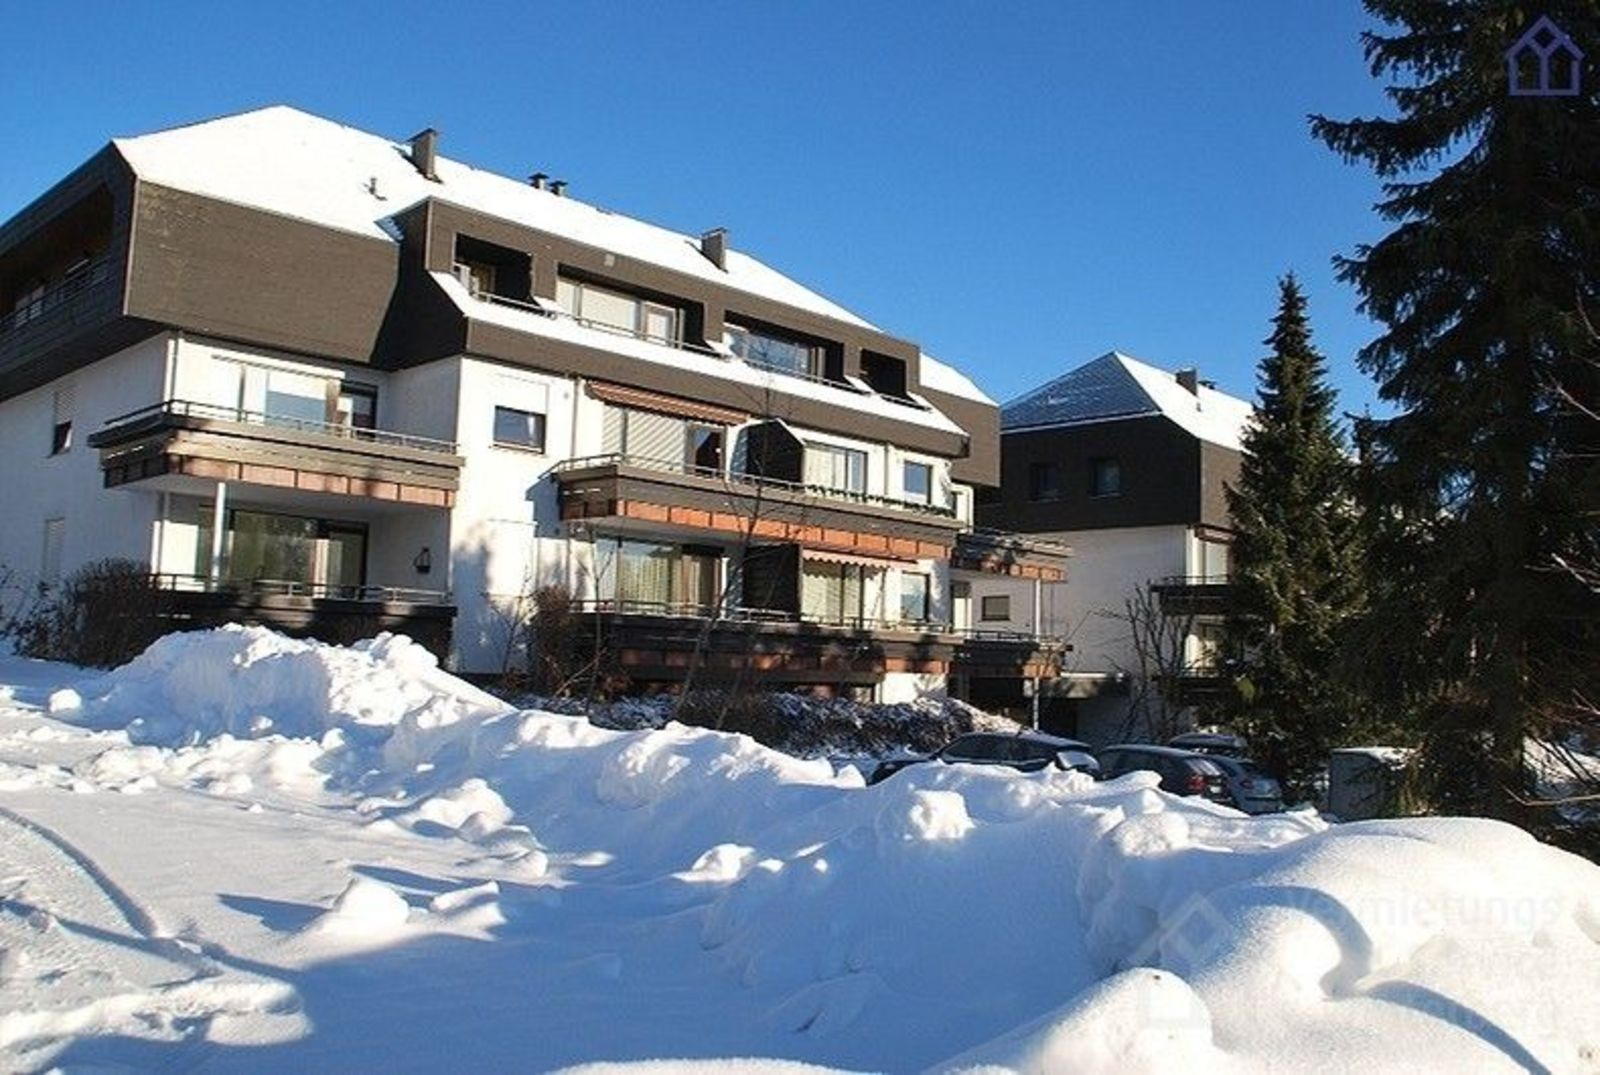 Apartment - Am Waltenberg 57-N | Winterberg